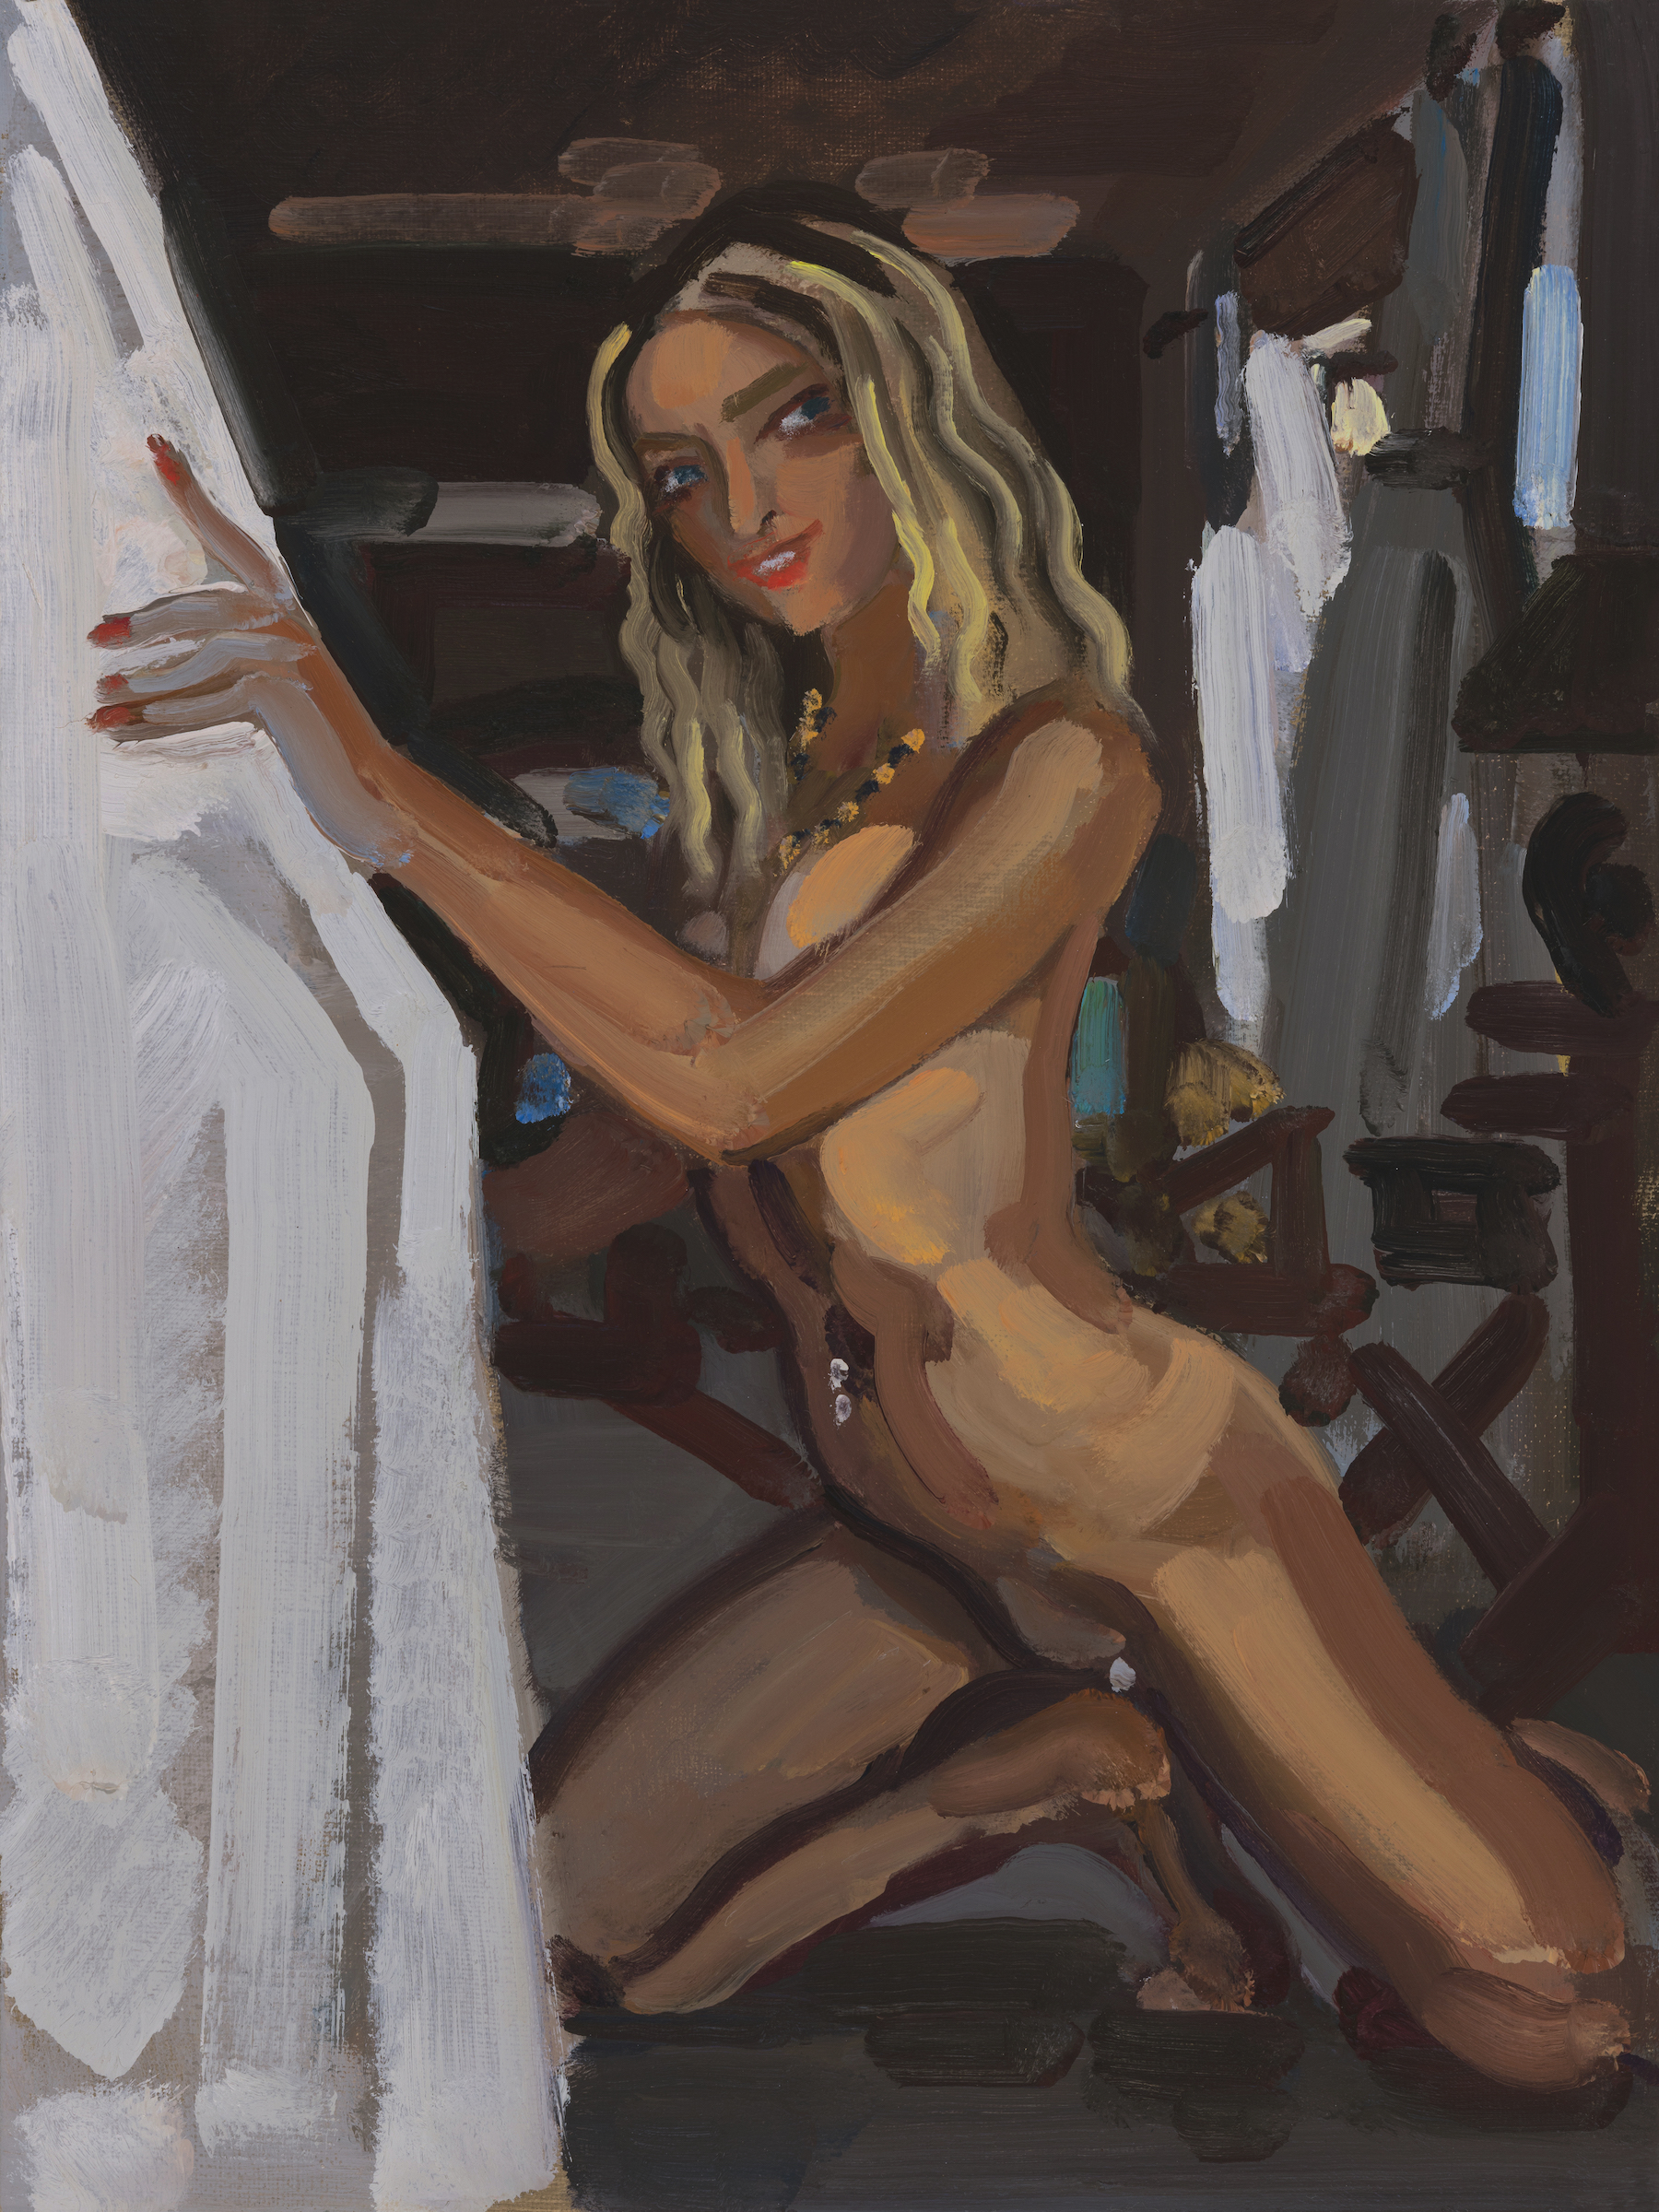 Nude with Tan and Crouching Down